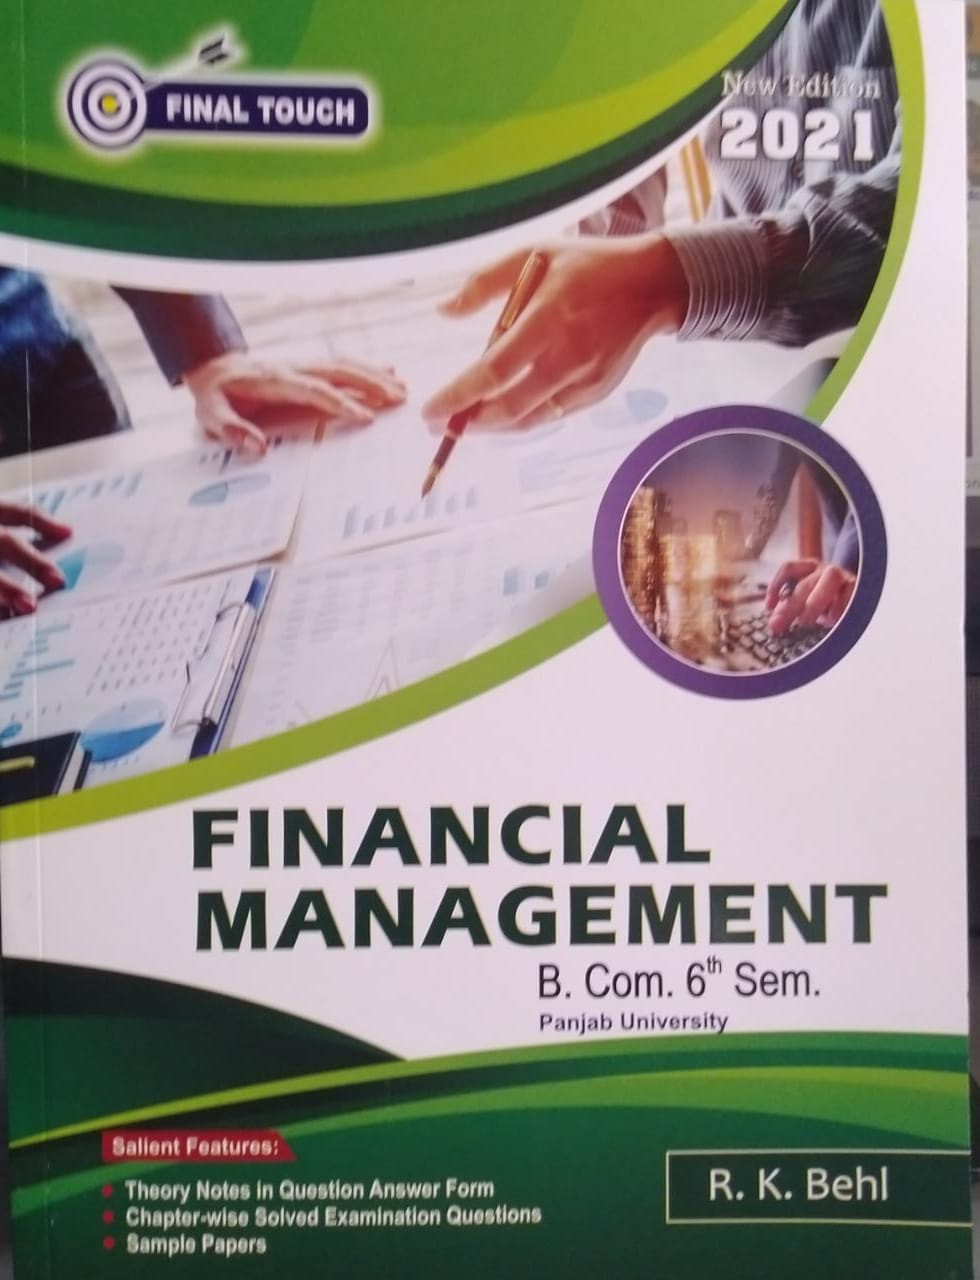 Final Touch Financial Management for Semester-VI B.Com (P.U.) by R.K Behl (Aastha Publication) Edition 2021 for Panjab University